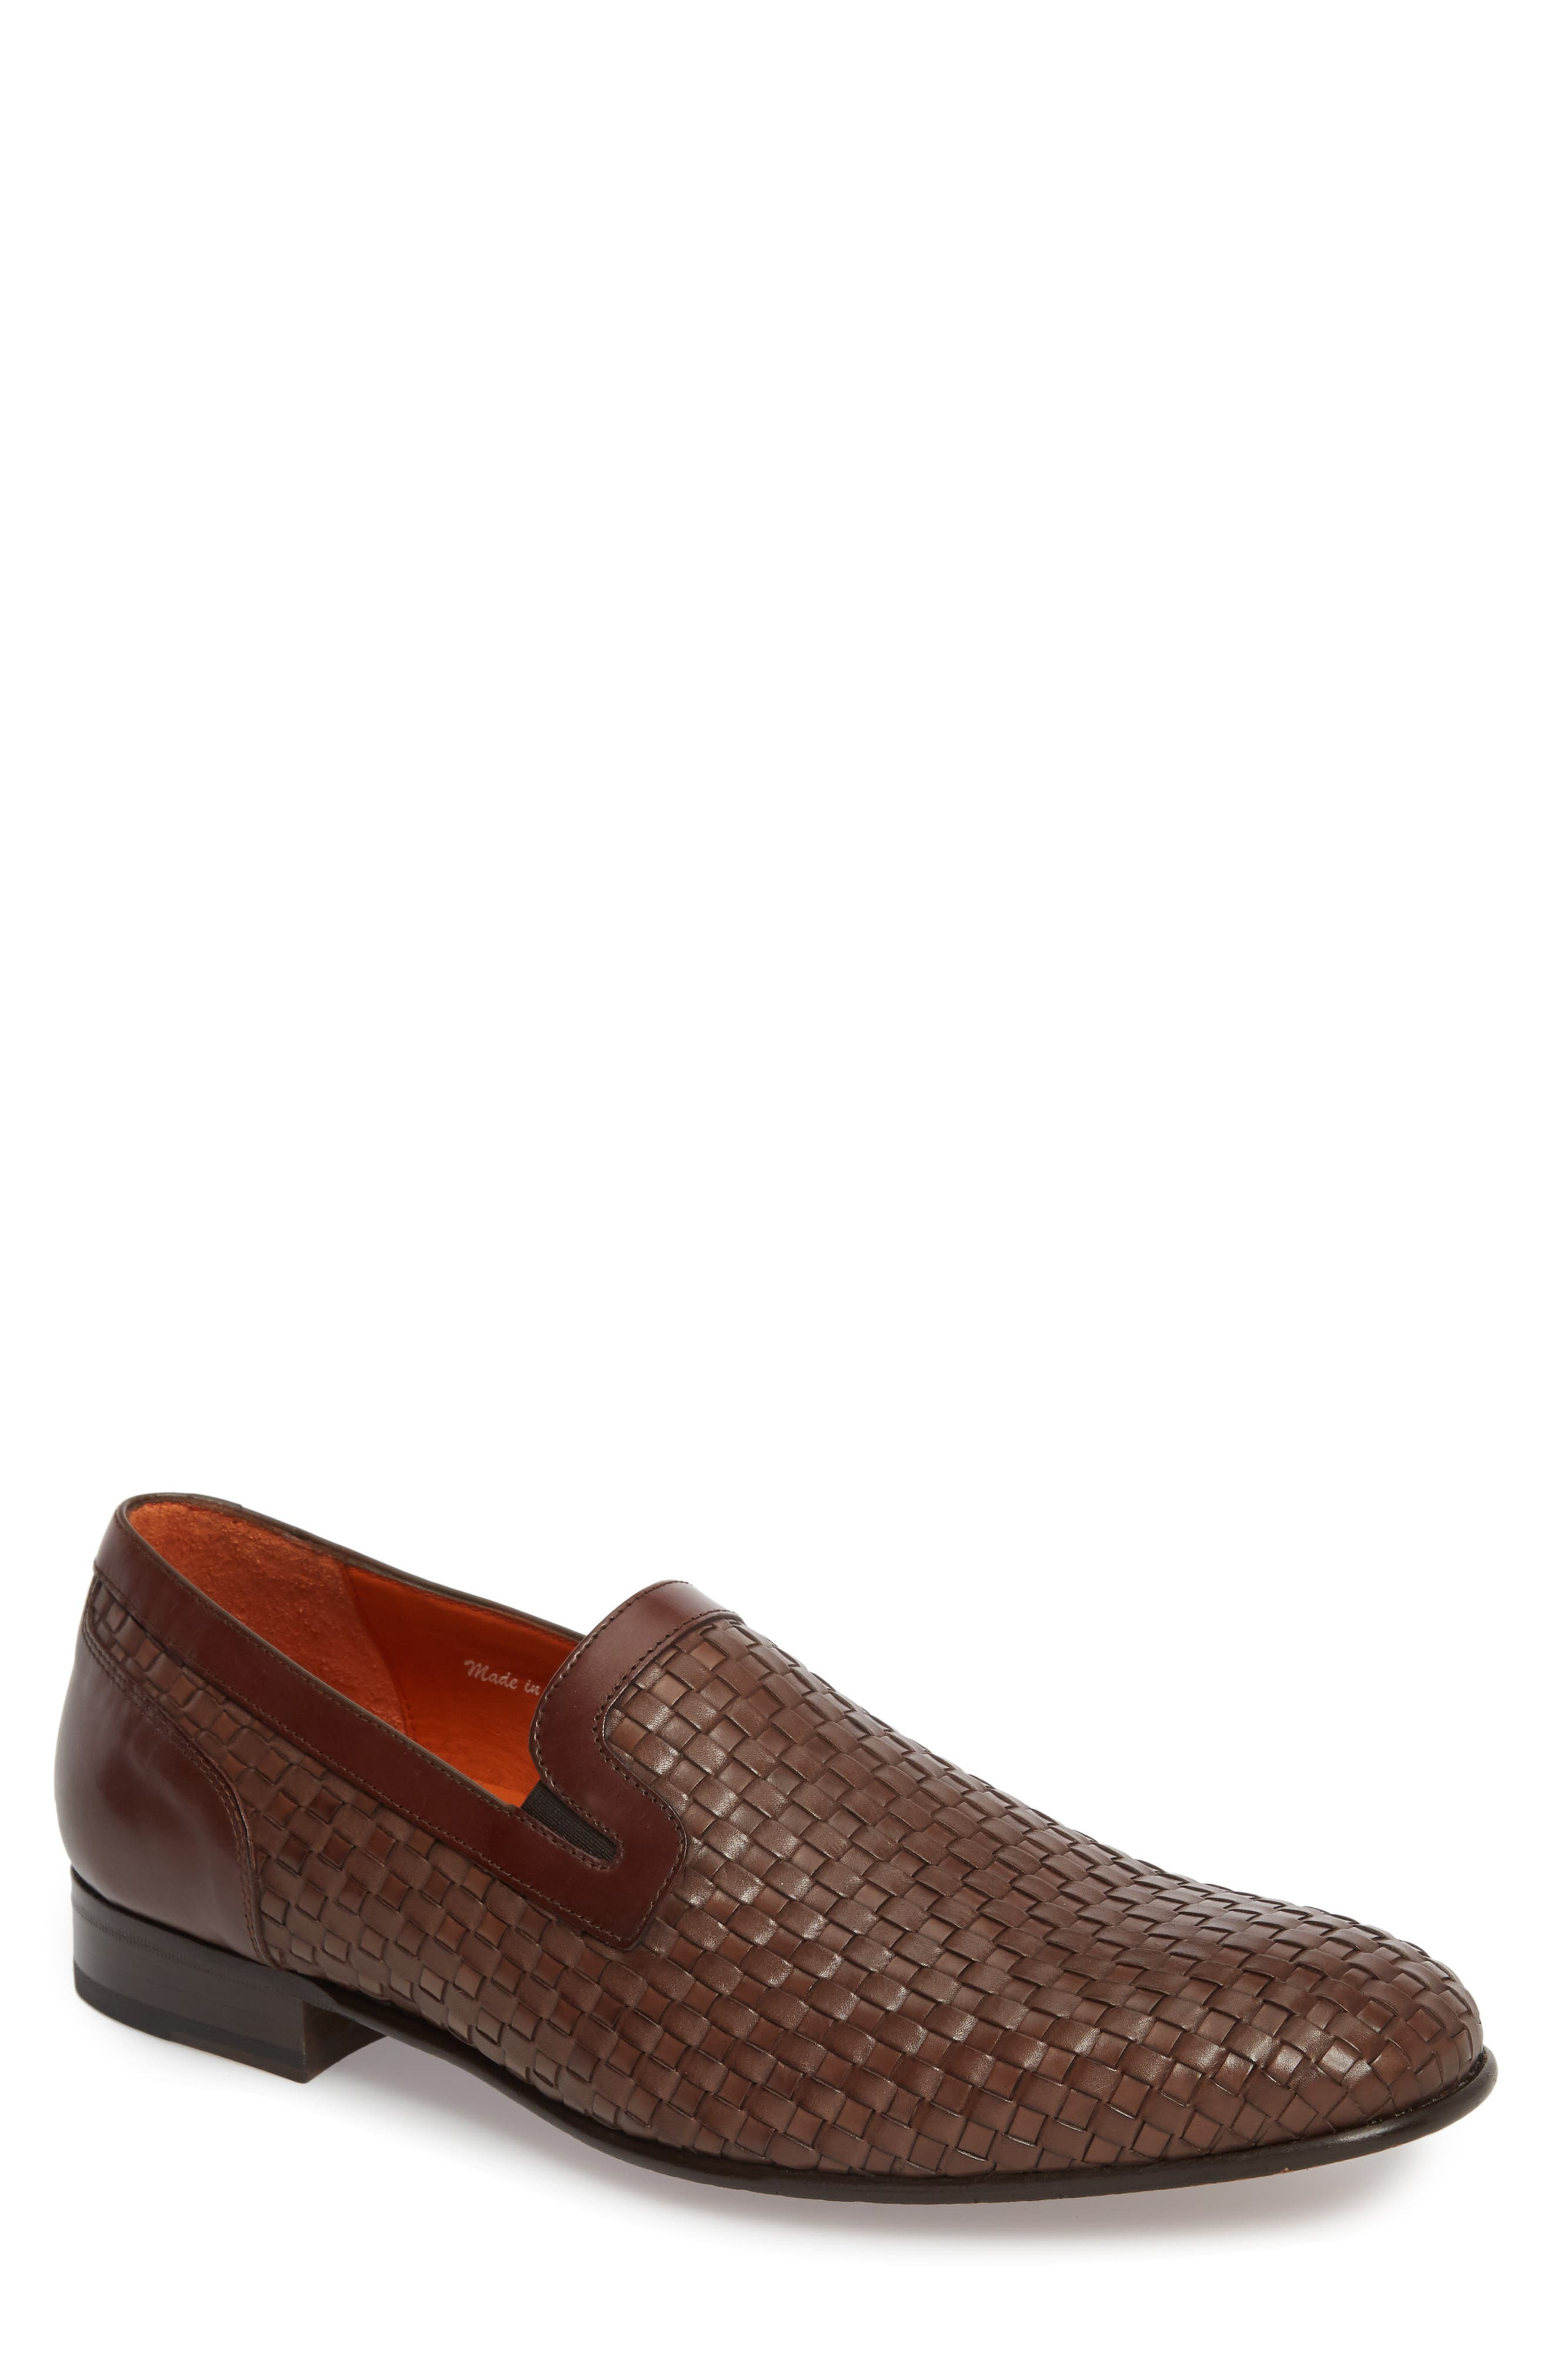 Eliseo Woven Venetian Loafer,                             Main thumbnail 1, color,                             Brown Leather